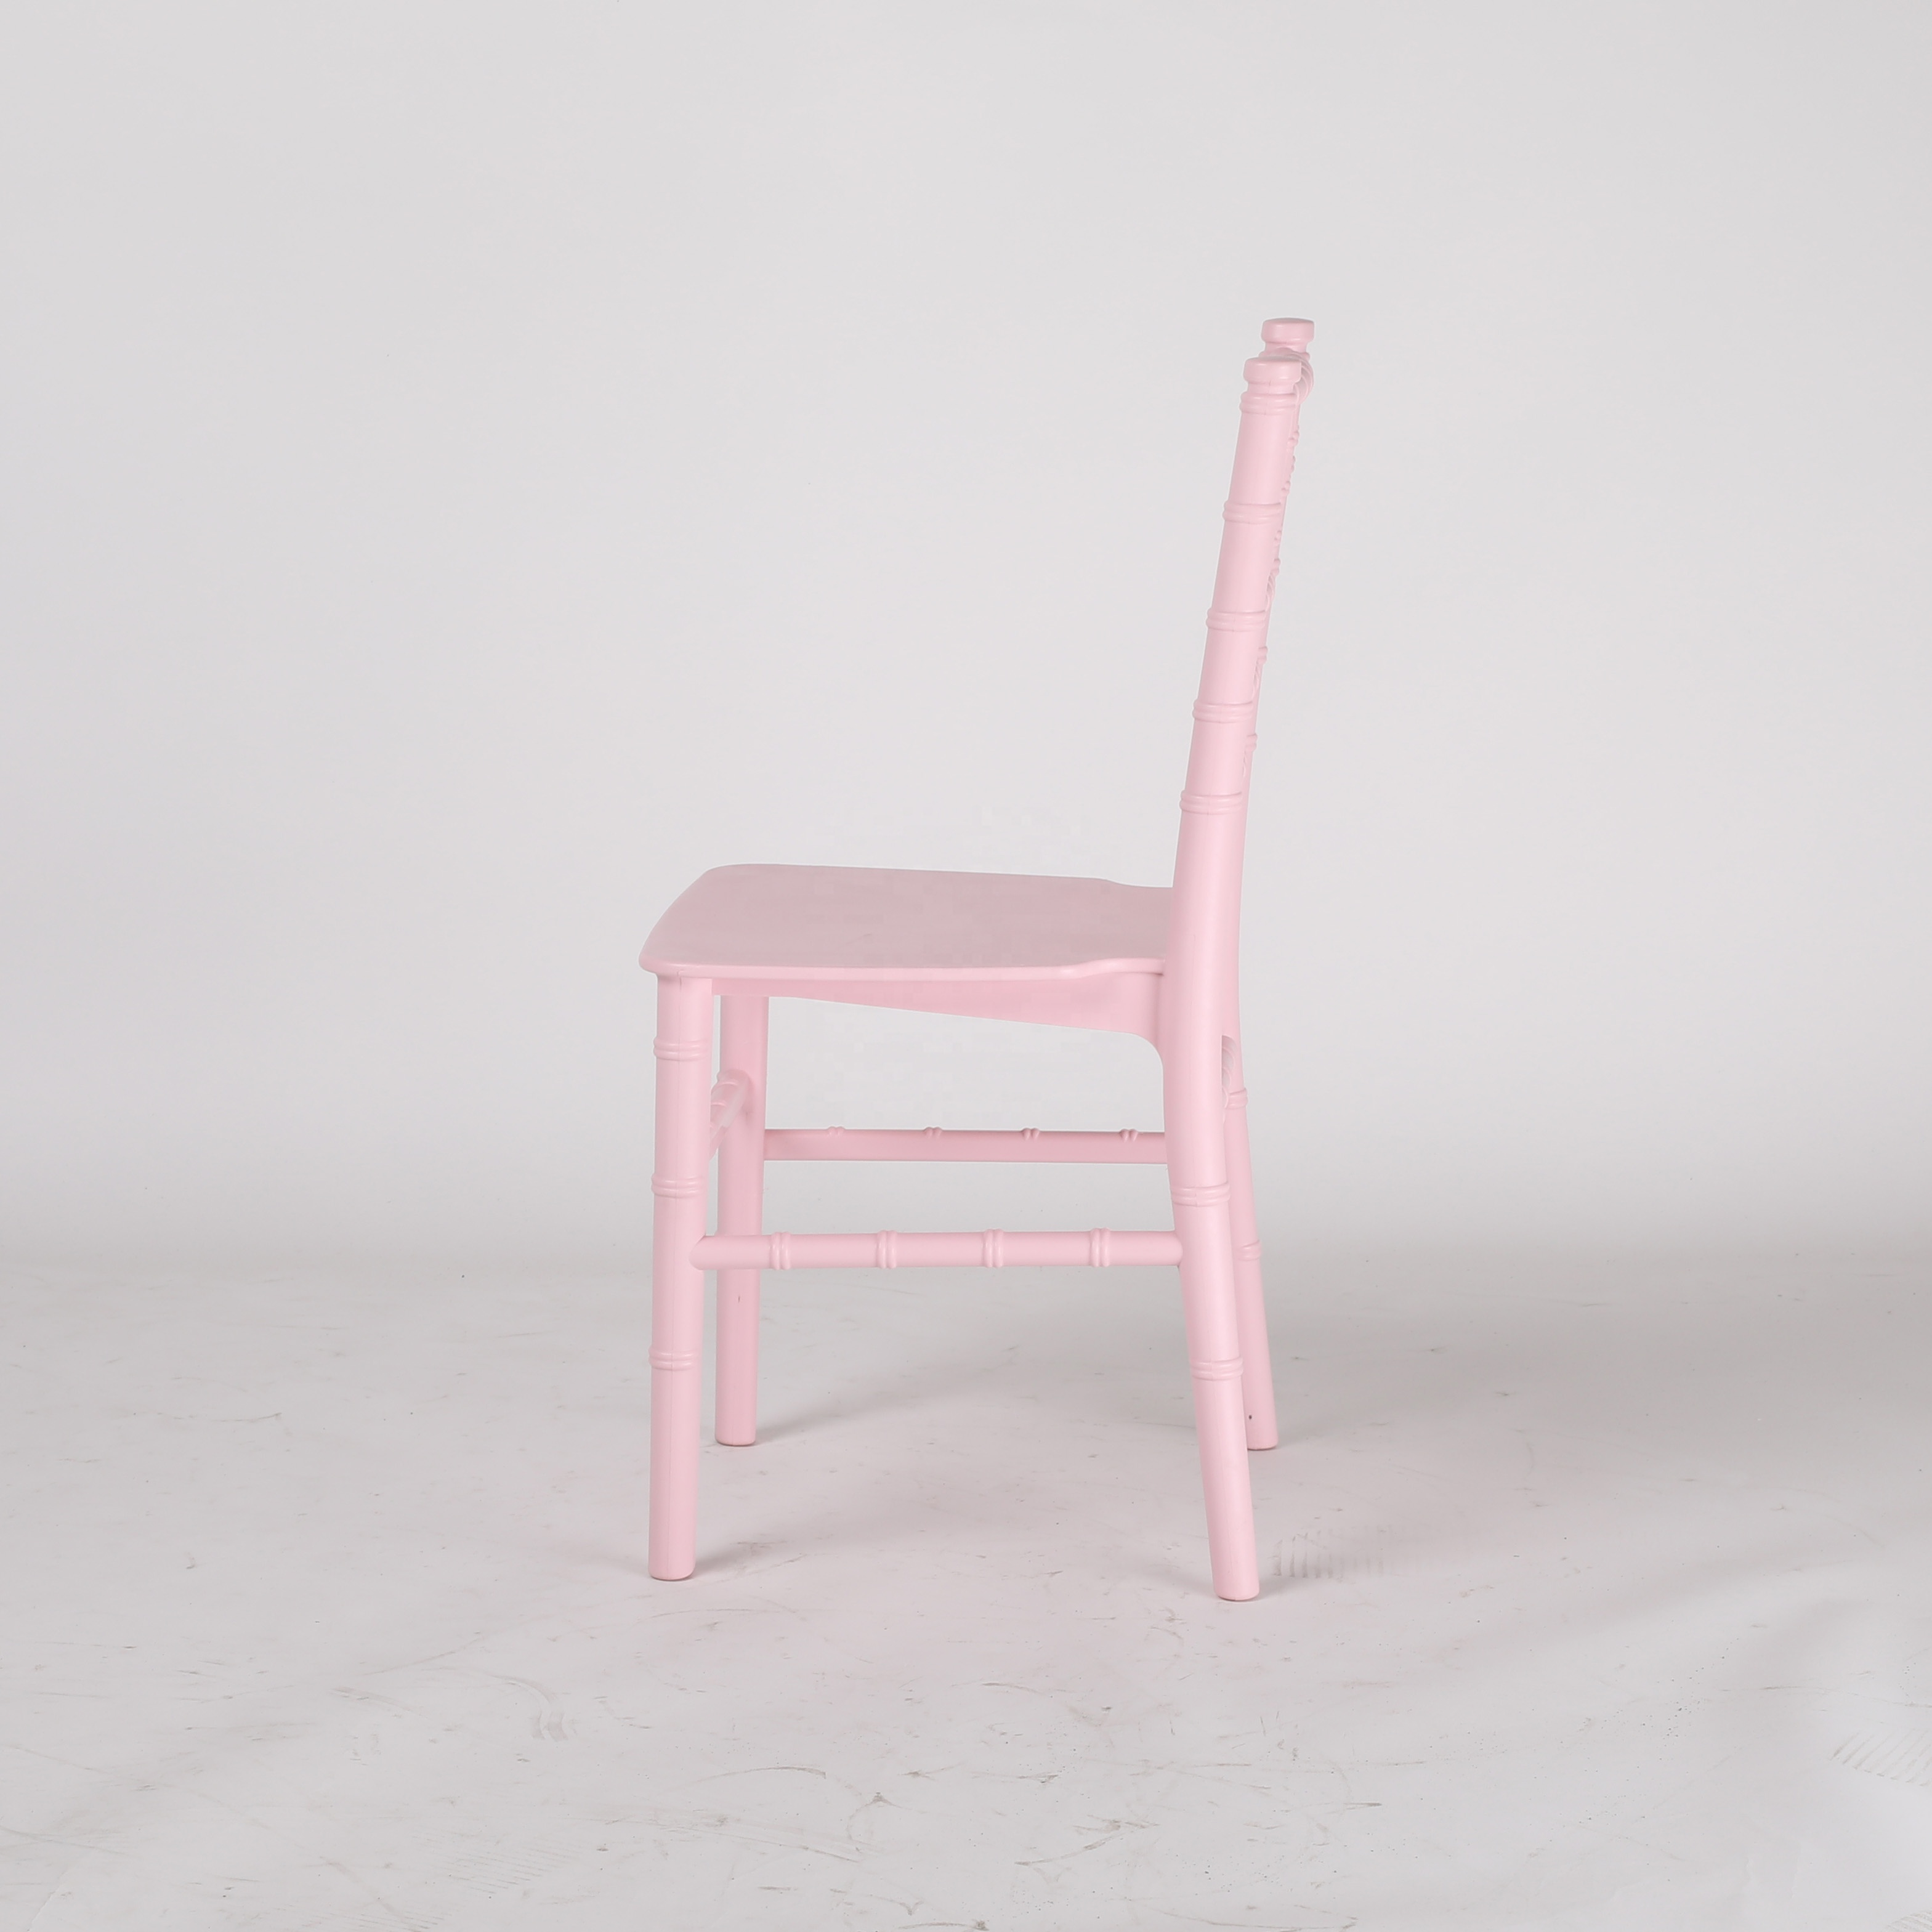 Astonishing China Factory Kids Chiavari Chair Children Party Chair For Sale Buy Kids Chiavari Chair Children Party Chair For Sale Kids Chiavari Chair Product On Customarchery Wood Chair Design Ideas Customarcherynet